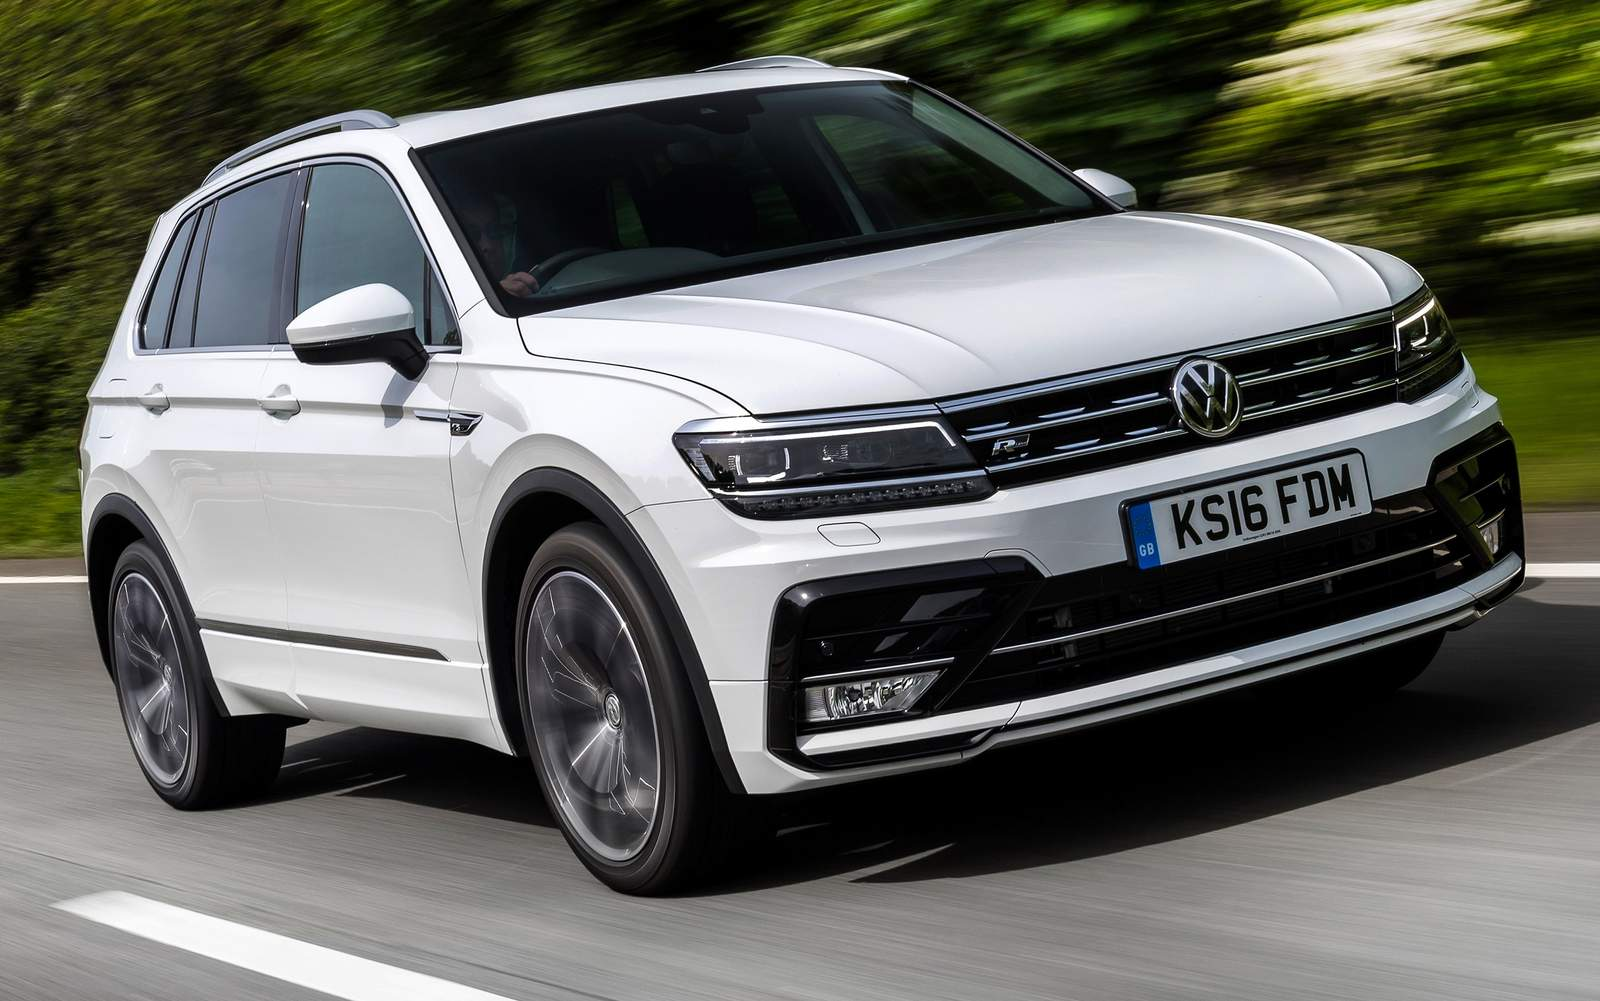 tiguan bi turbo de 240 cv chega inglaterra por r 146 mil car blog br. Black Bedroom Furniture Sets. Home Design Ideas